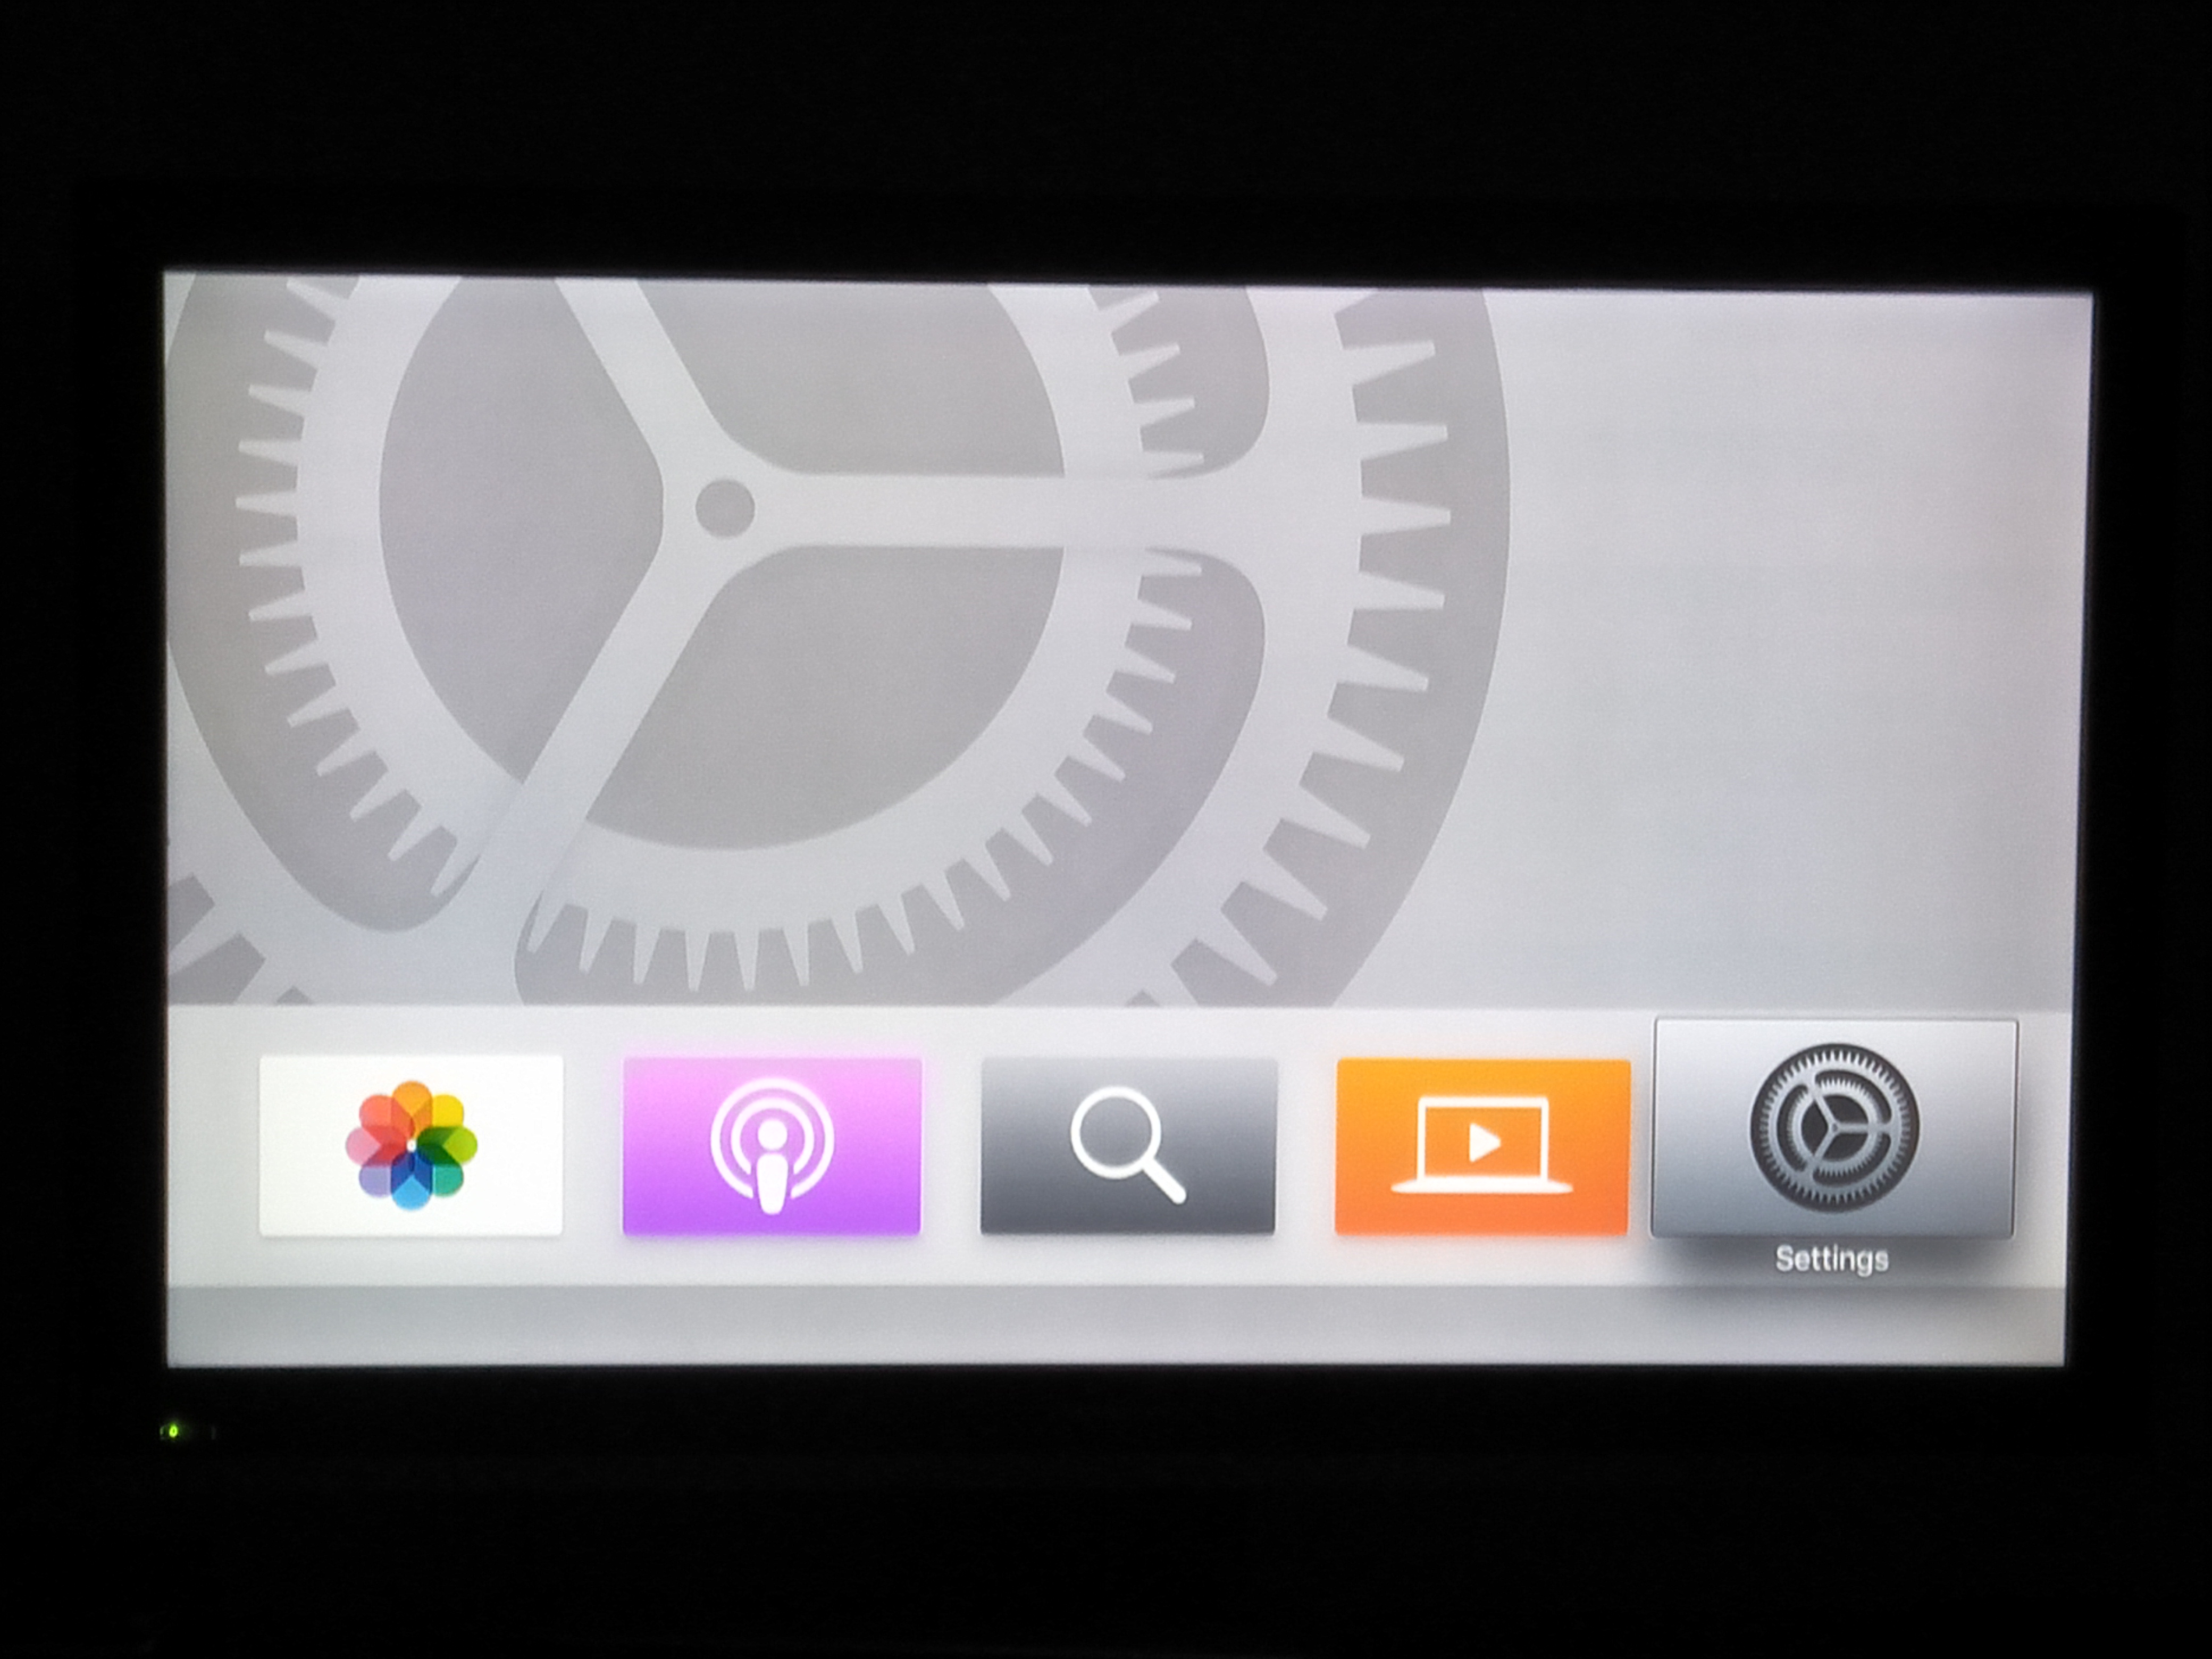 Can't see App Store logo on my Apple … - Apple Community